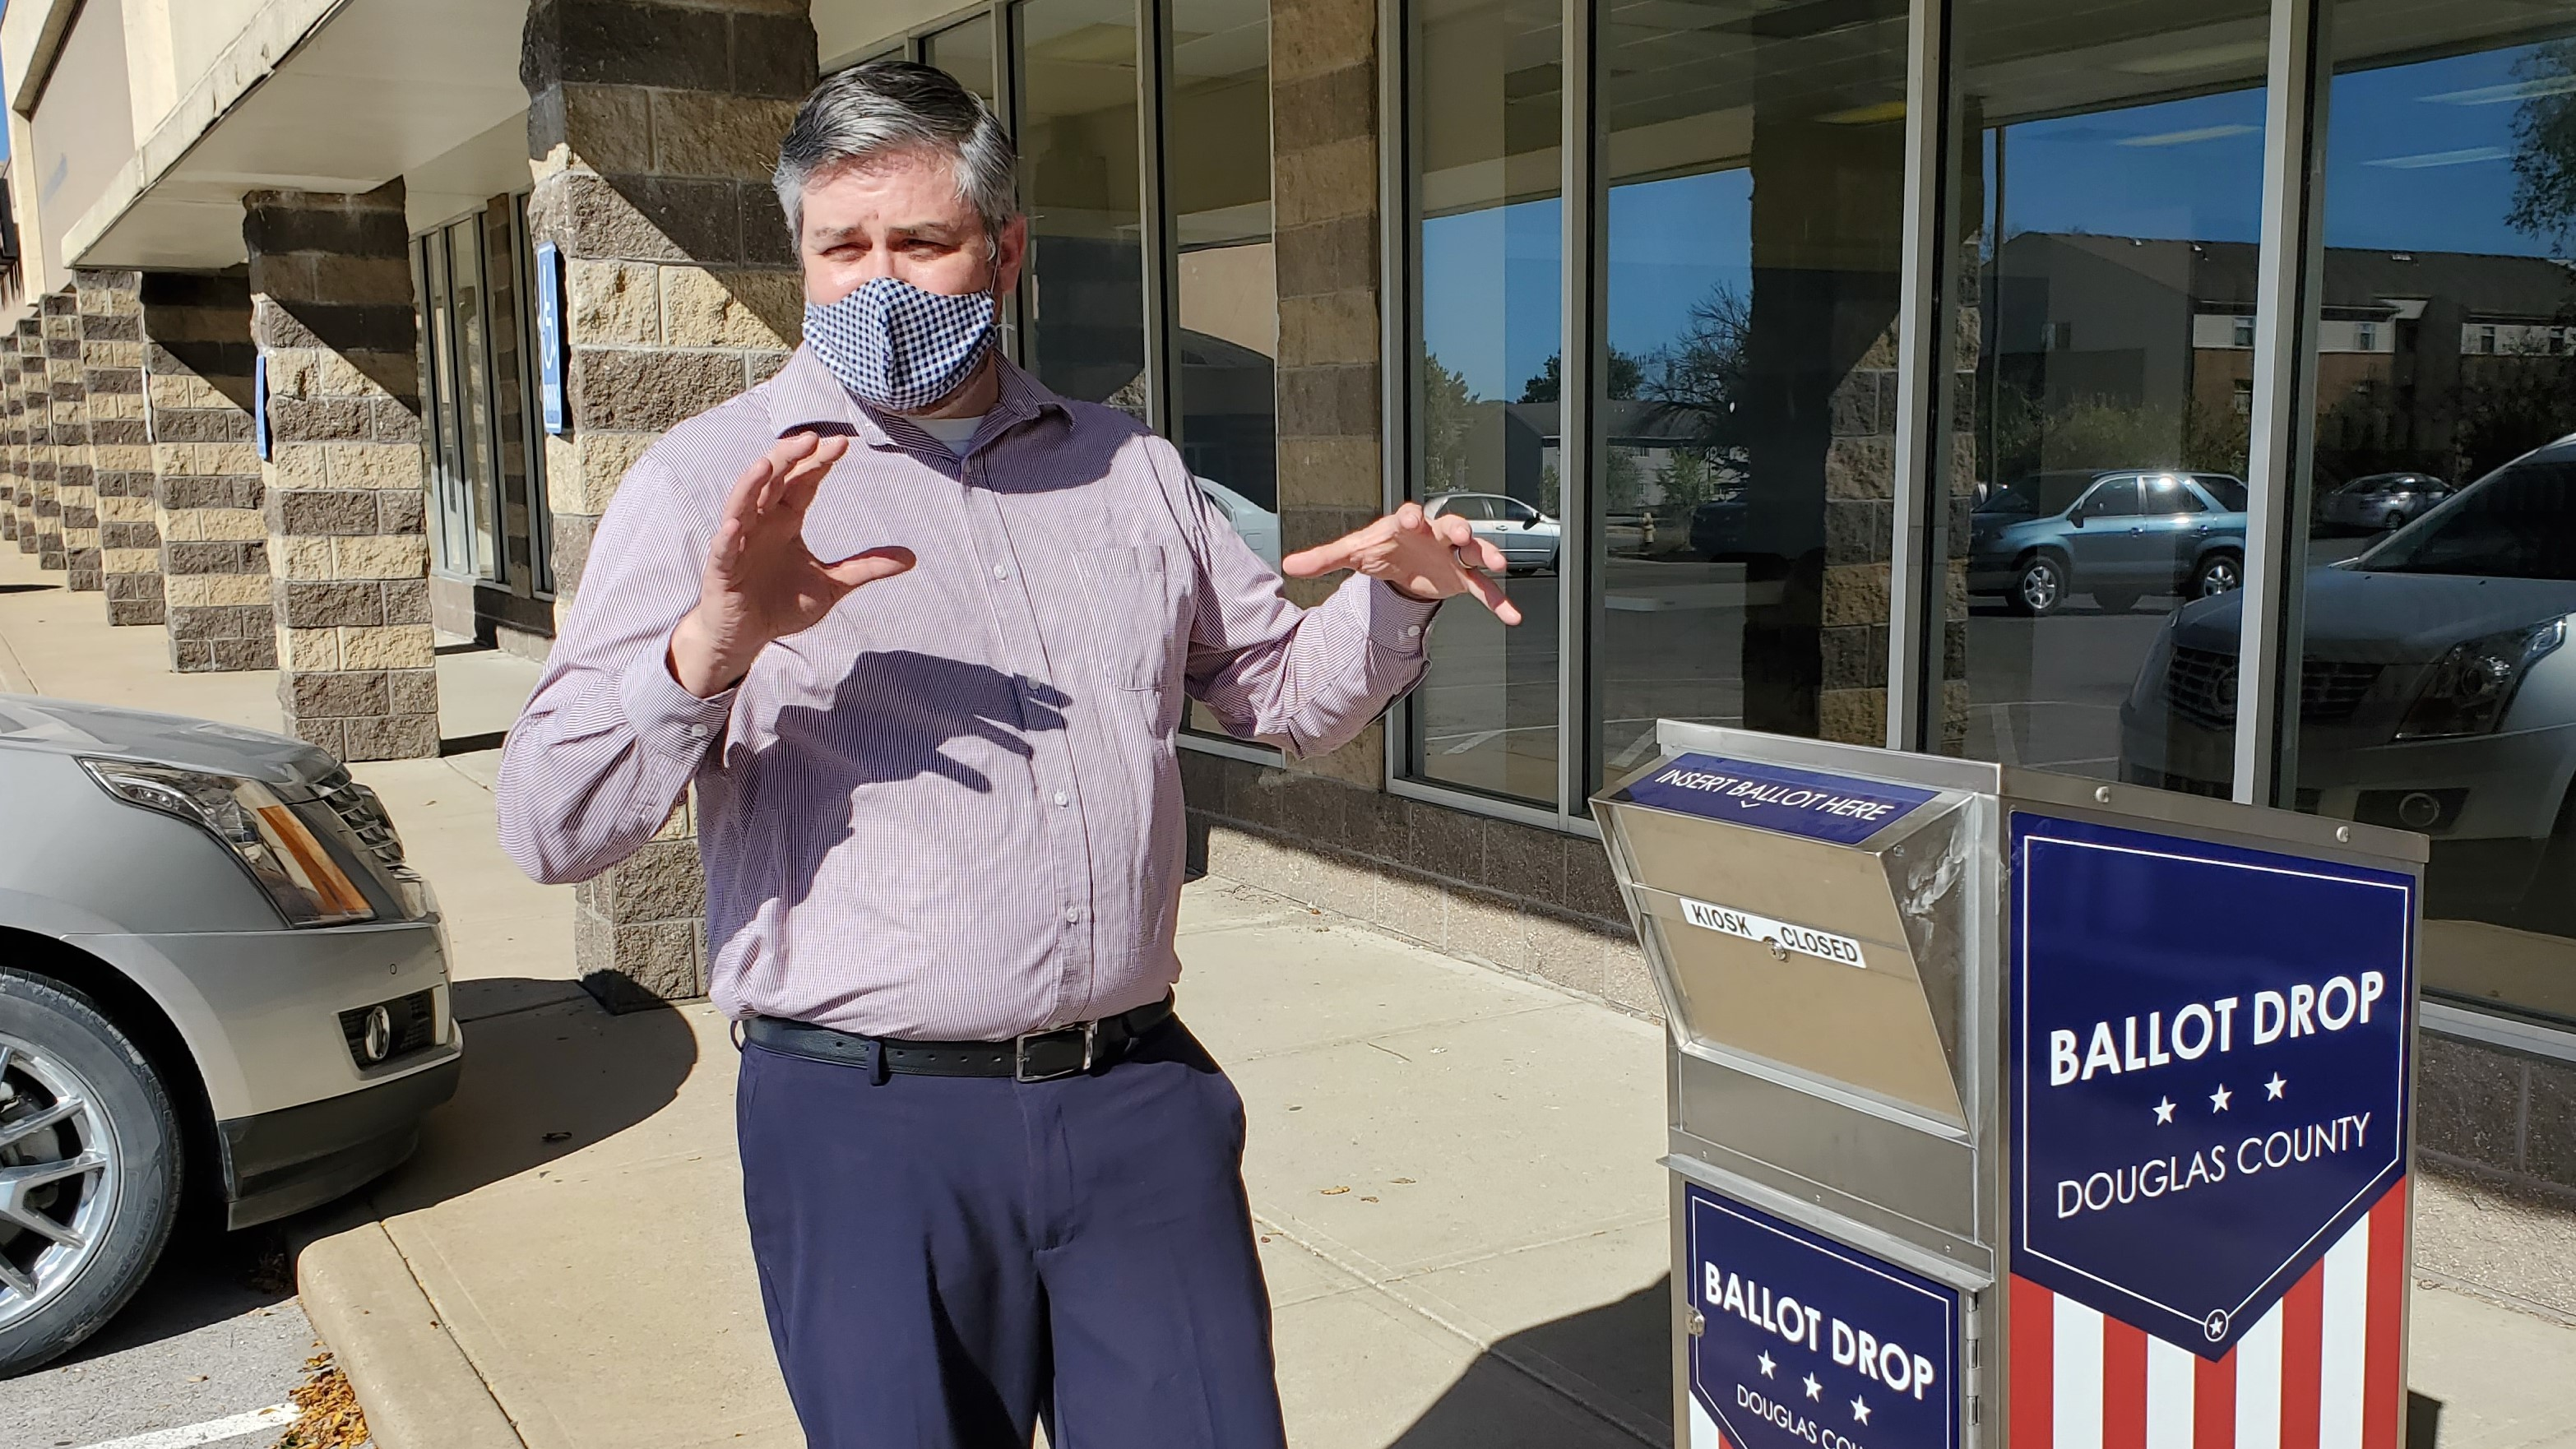 Douglas County Clerk Jamie Shew with one of the county's ballot drop boxes. (Photo by Stephen Koranda)